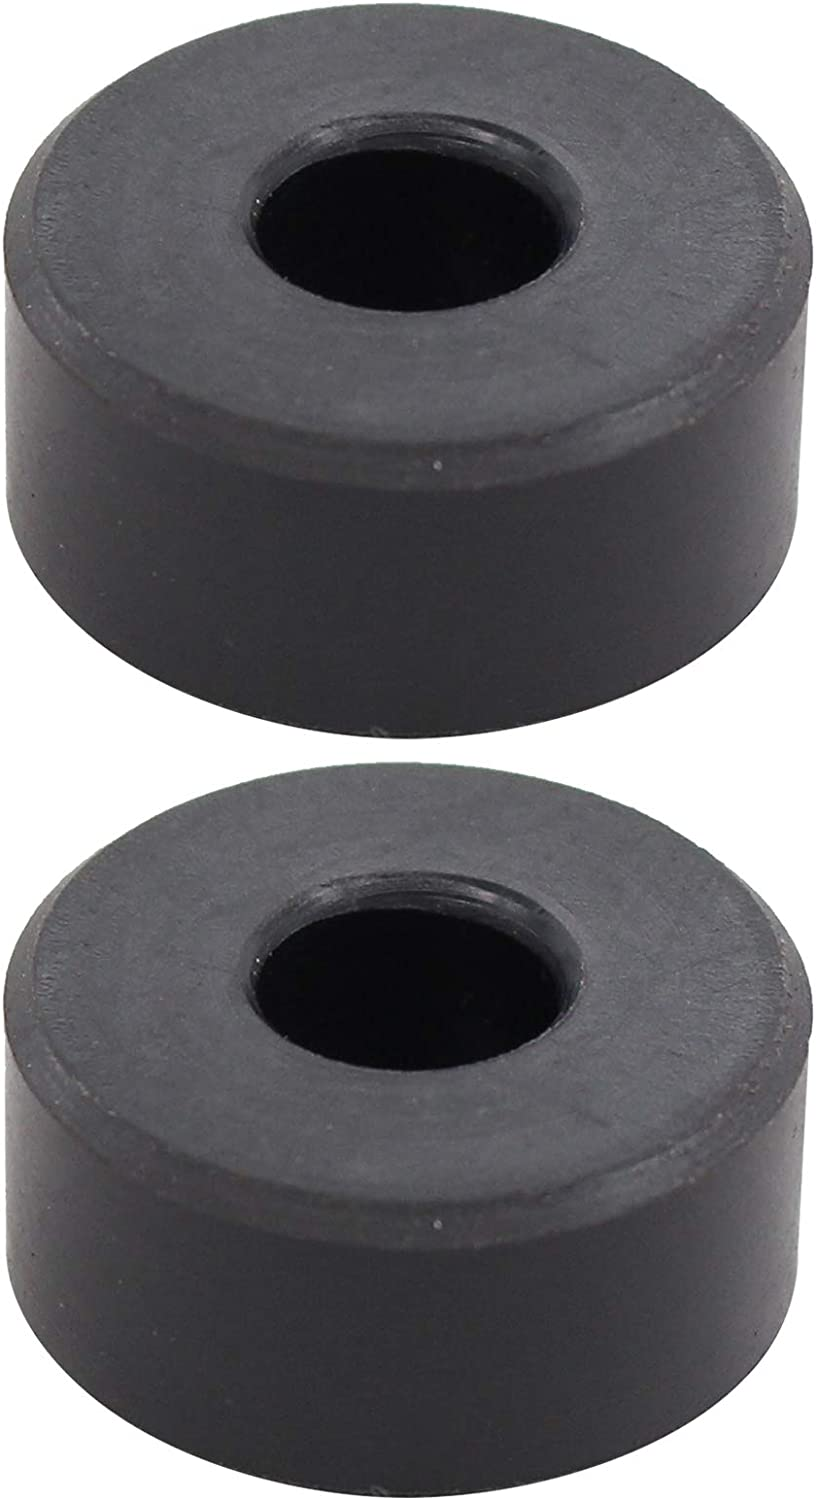 XtremeAmazing Pack of 2 Secondary Rollers Clutch Now free Arlington Mall shipping Compatible with